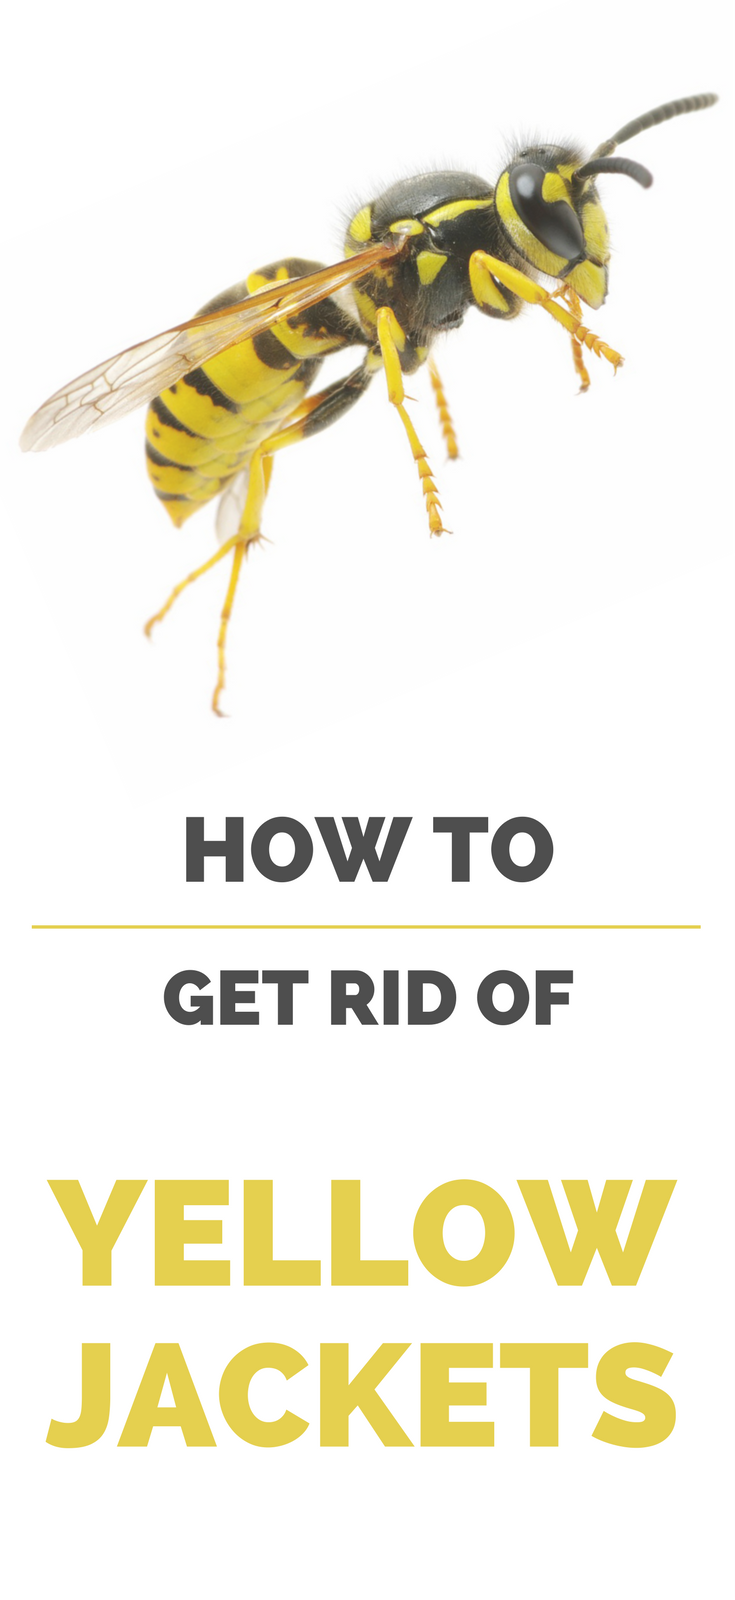 How To Get Rid Of Yellow Jackets In Foundation